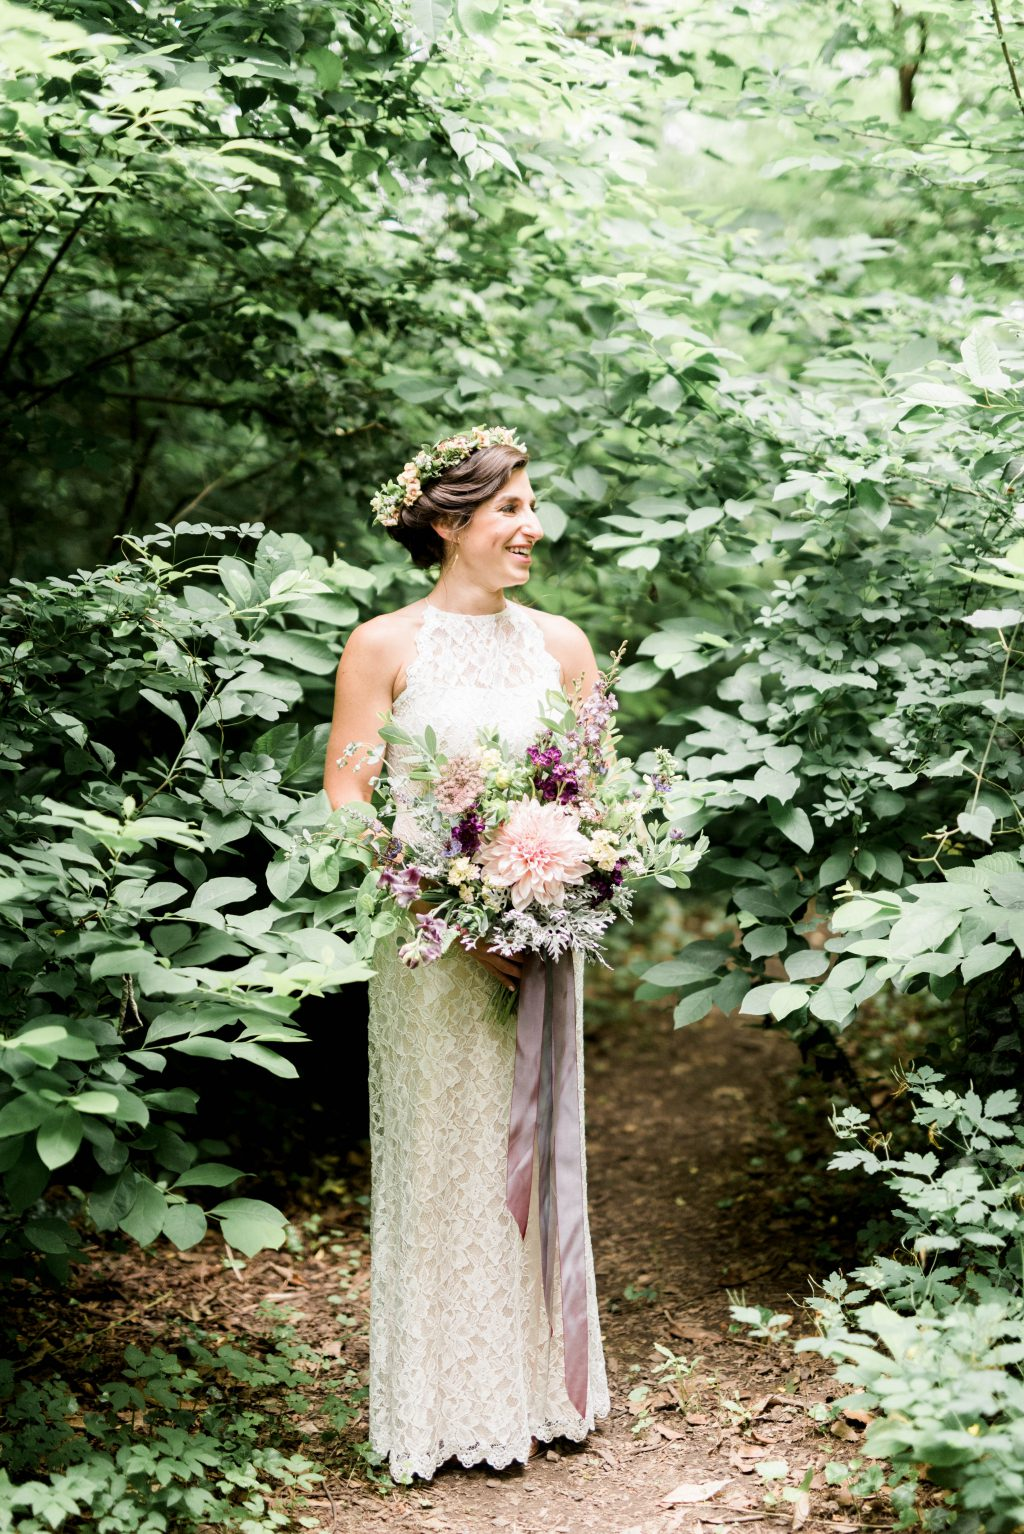 awbury-arboretum-wedding-DIY-boho-summer-haley-richter-photography-092